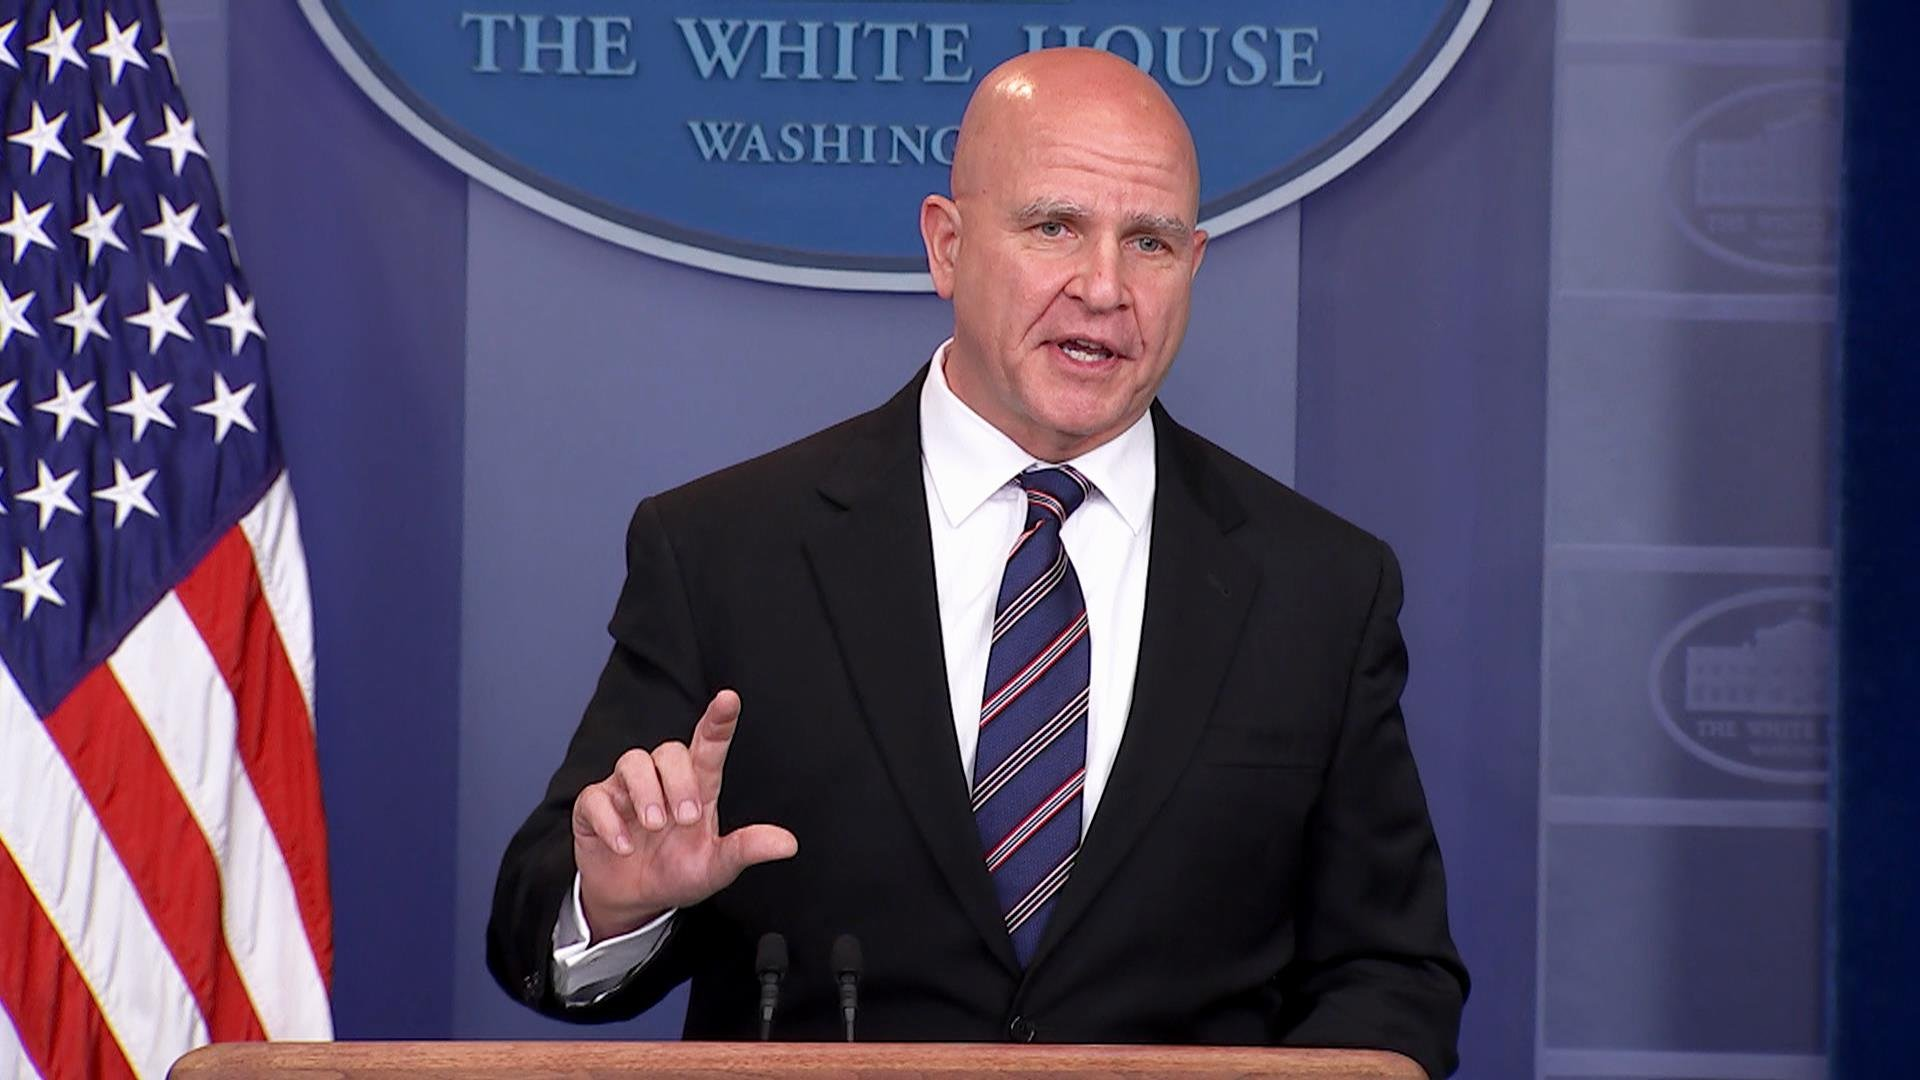 White House responds to report of preparations to oust HR McMaster